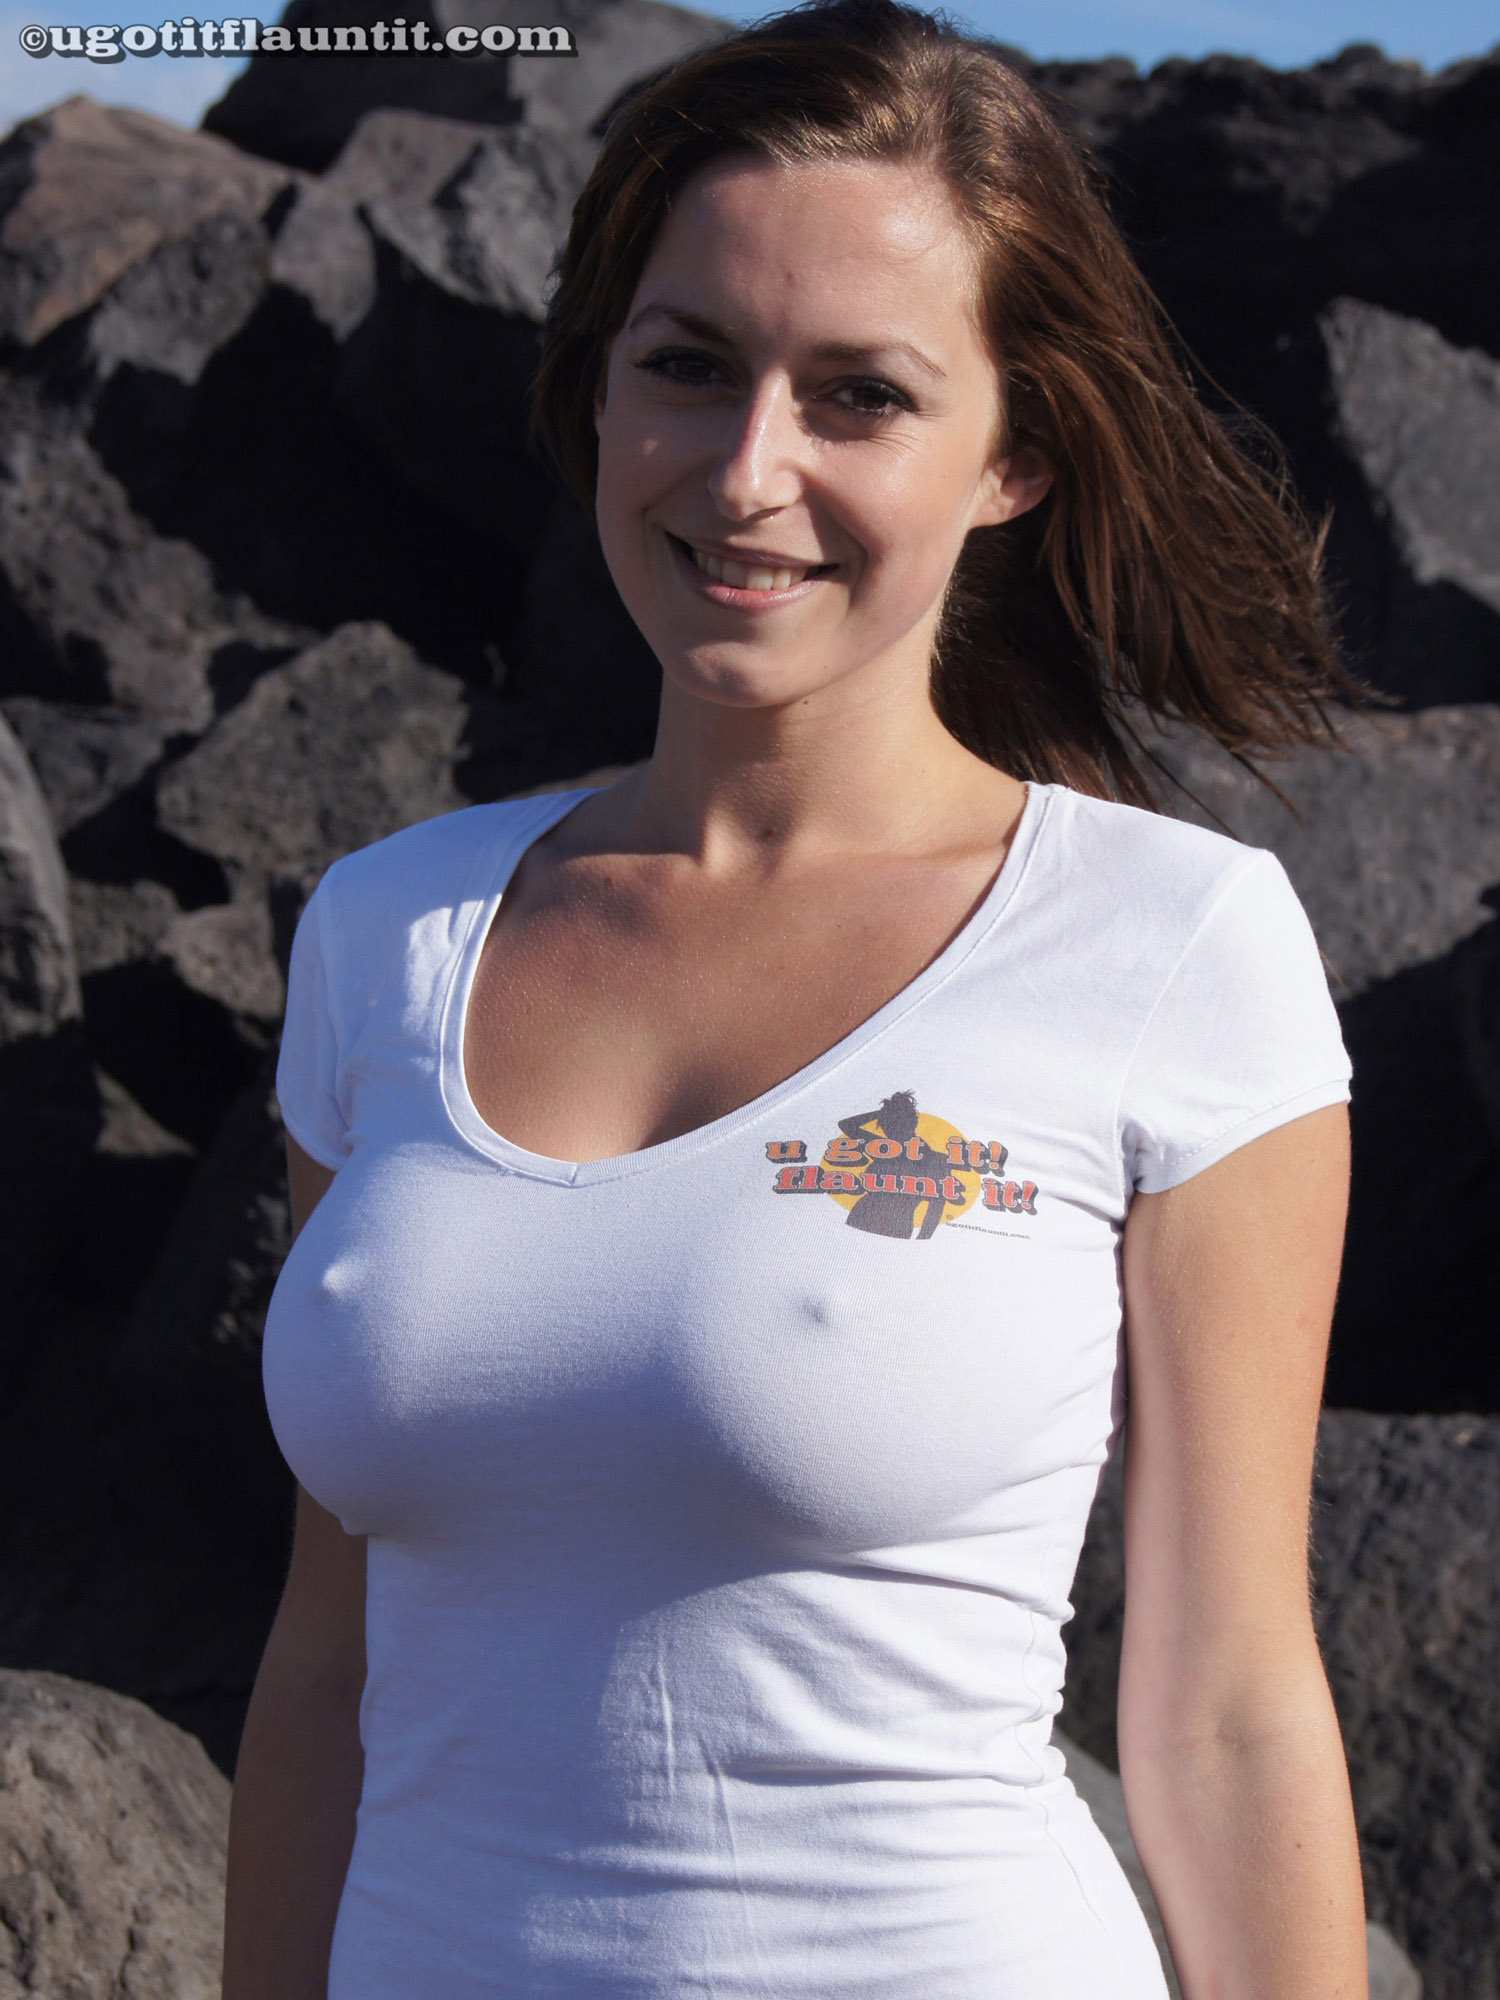 Amateur wet tshirt contest ponderosa 2013 - 3 part 5